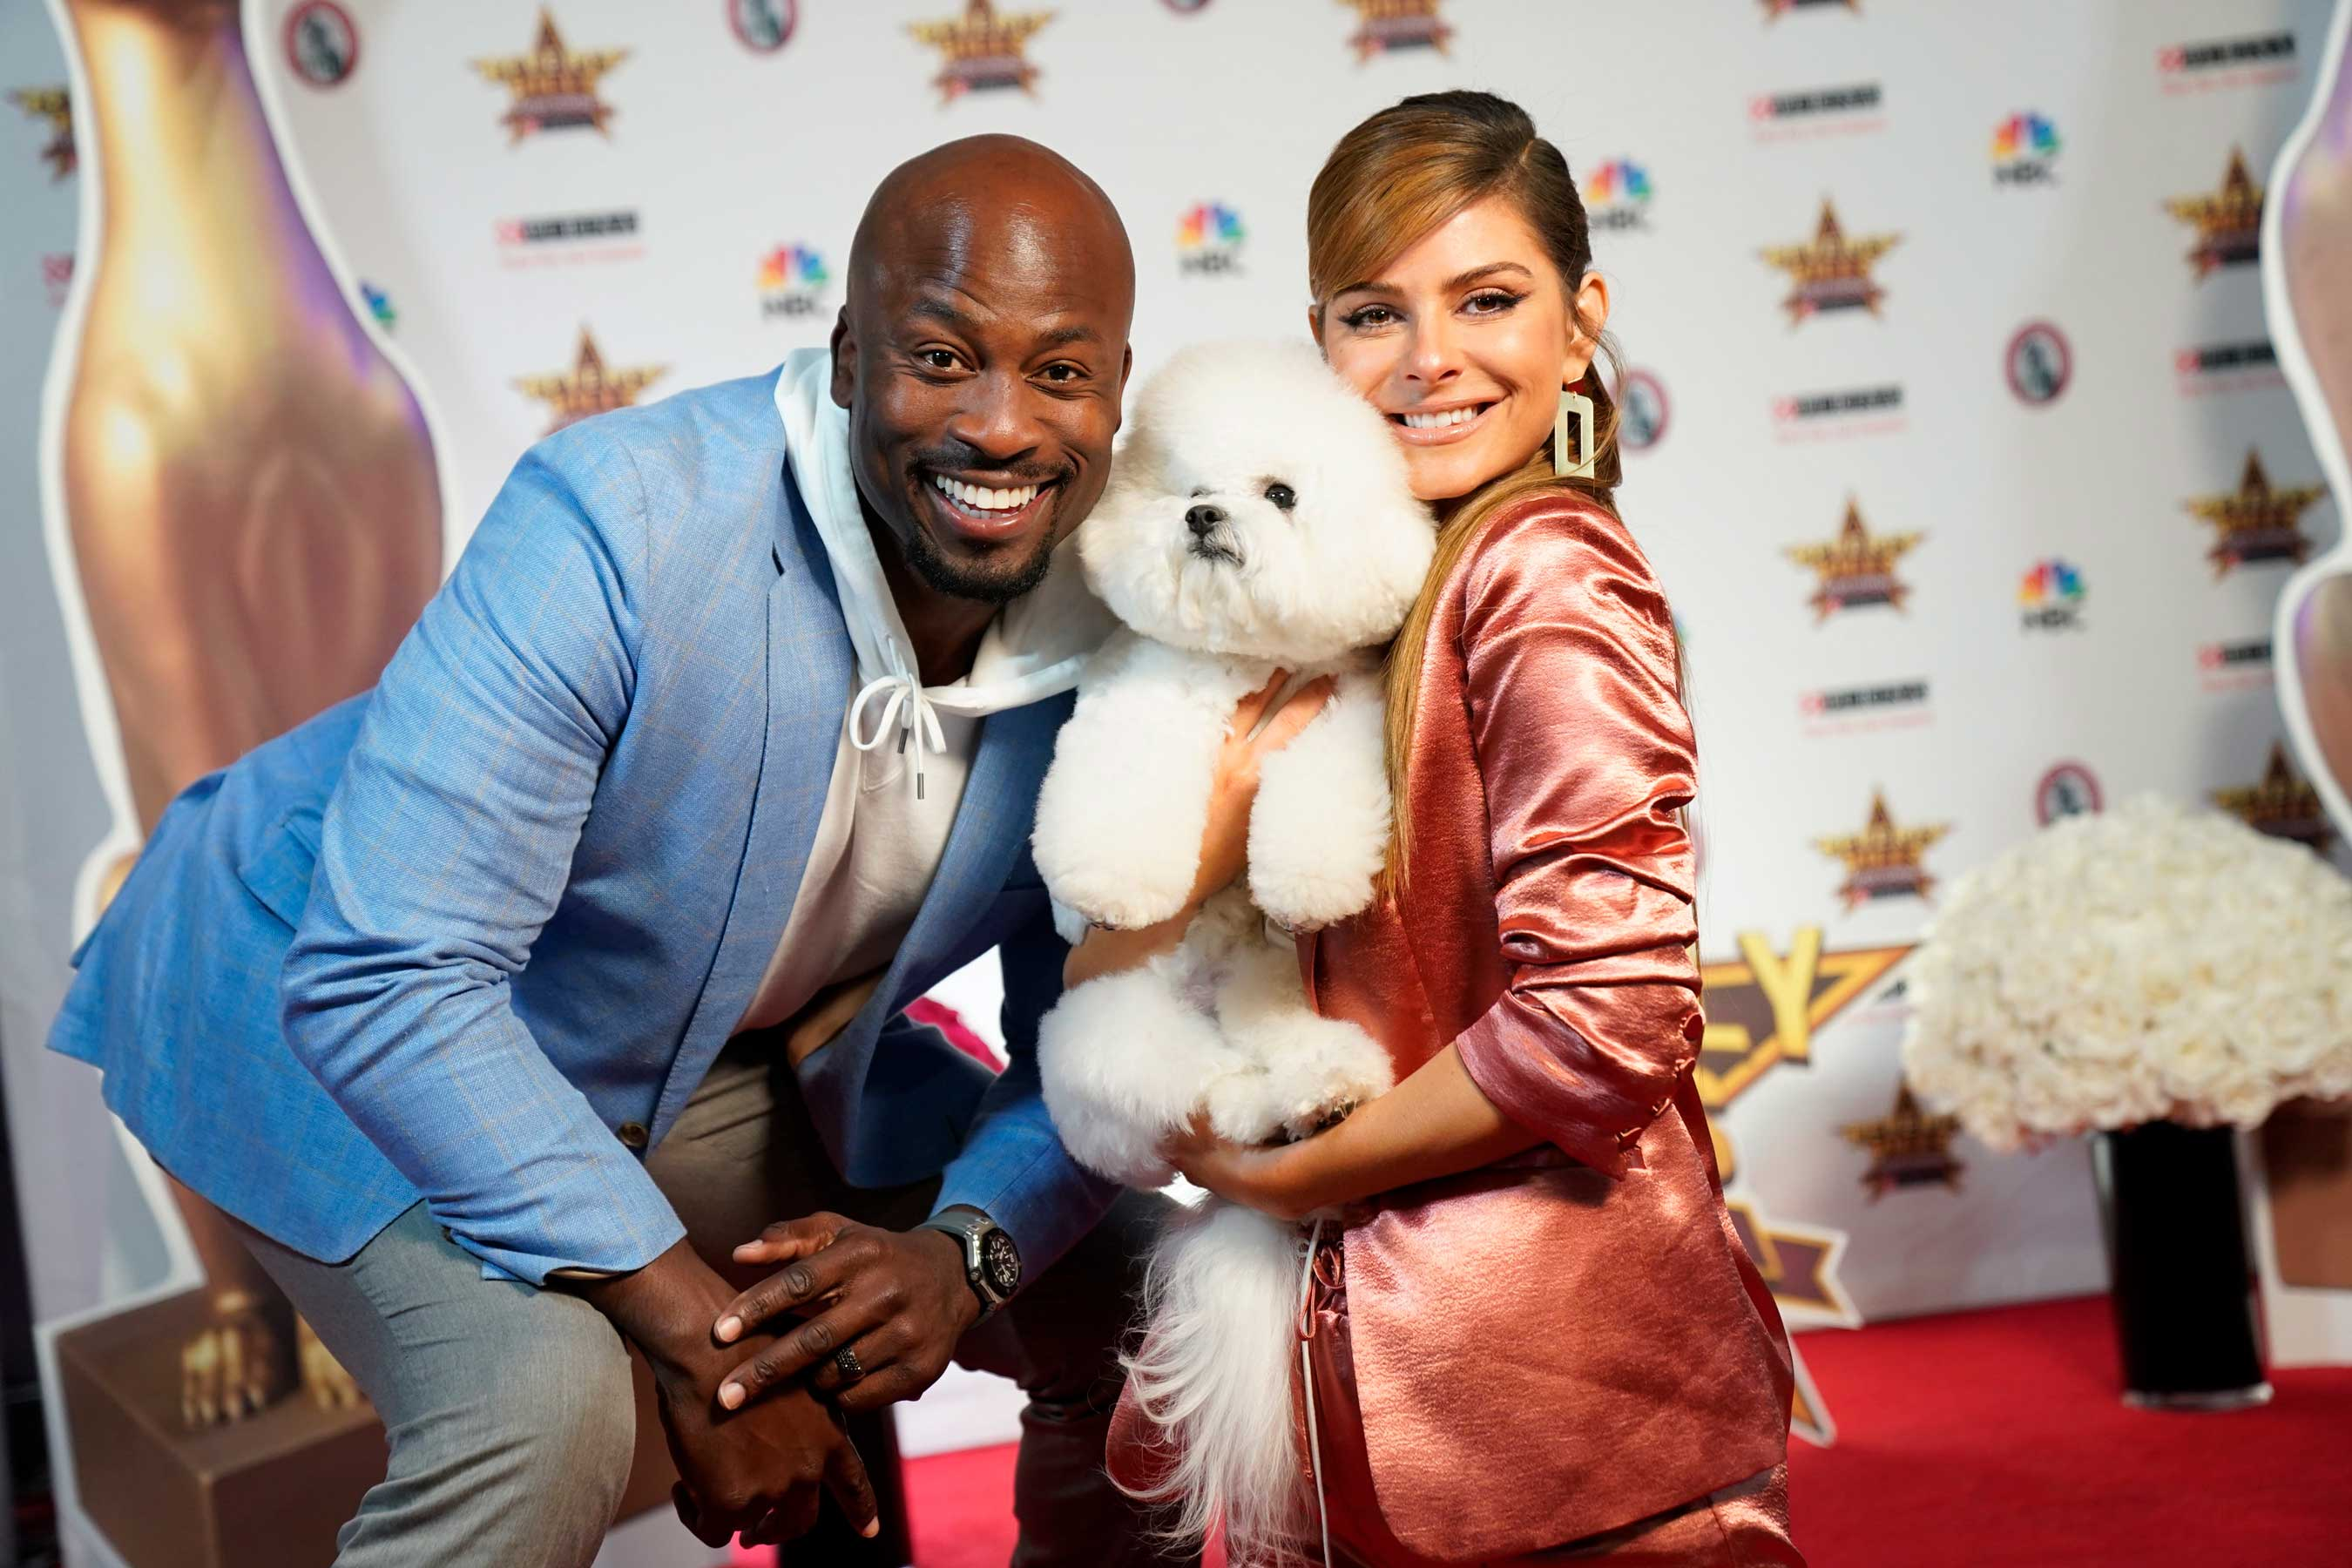 Maria Menounos and digital correspondent Akbar Gbajabiamila give viewers a behind-the-scenes look at the Beverly Hills Dog Show Presented by Purina, including star-studded interviews with pet-loving celebrity guests.